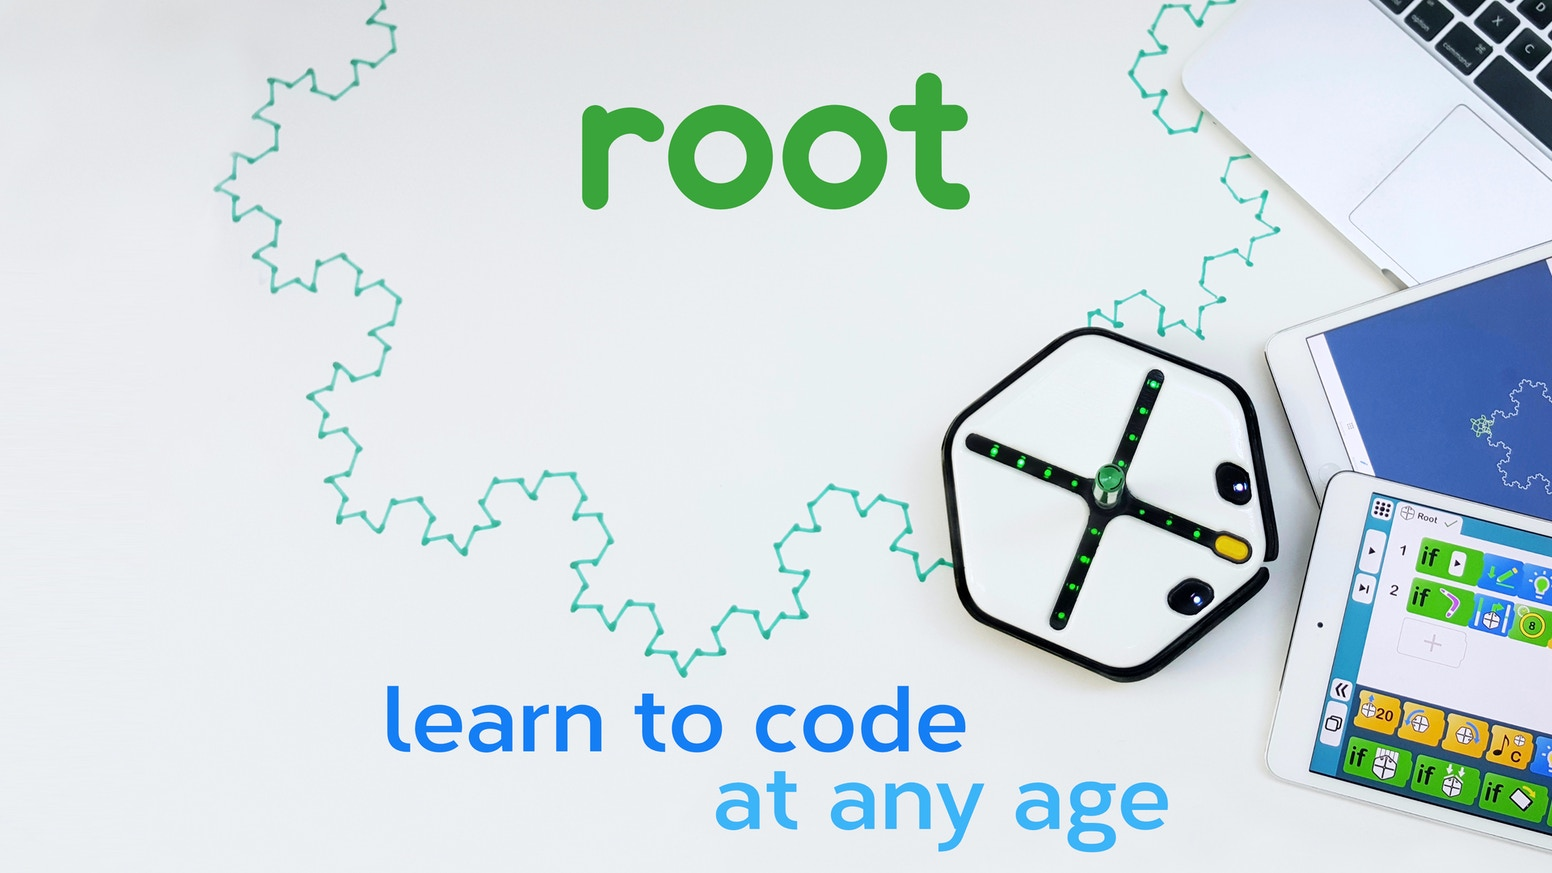 Let your kids fall in love with coding with Root, the robot that turns any surface into an interactive coding experience.